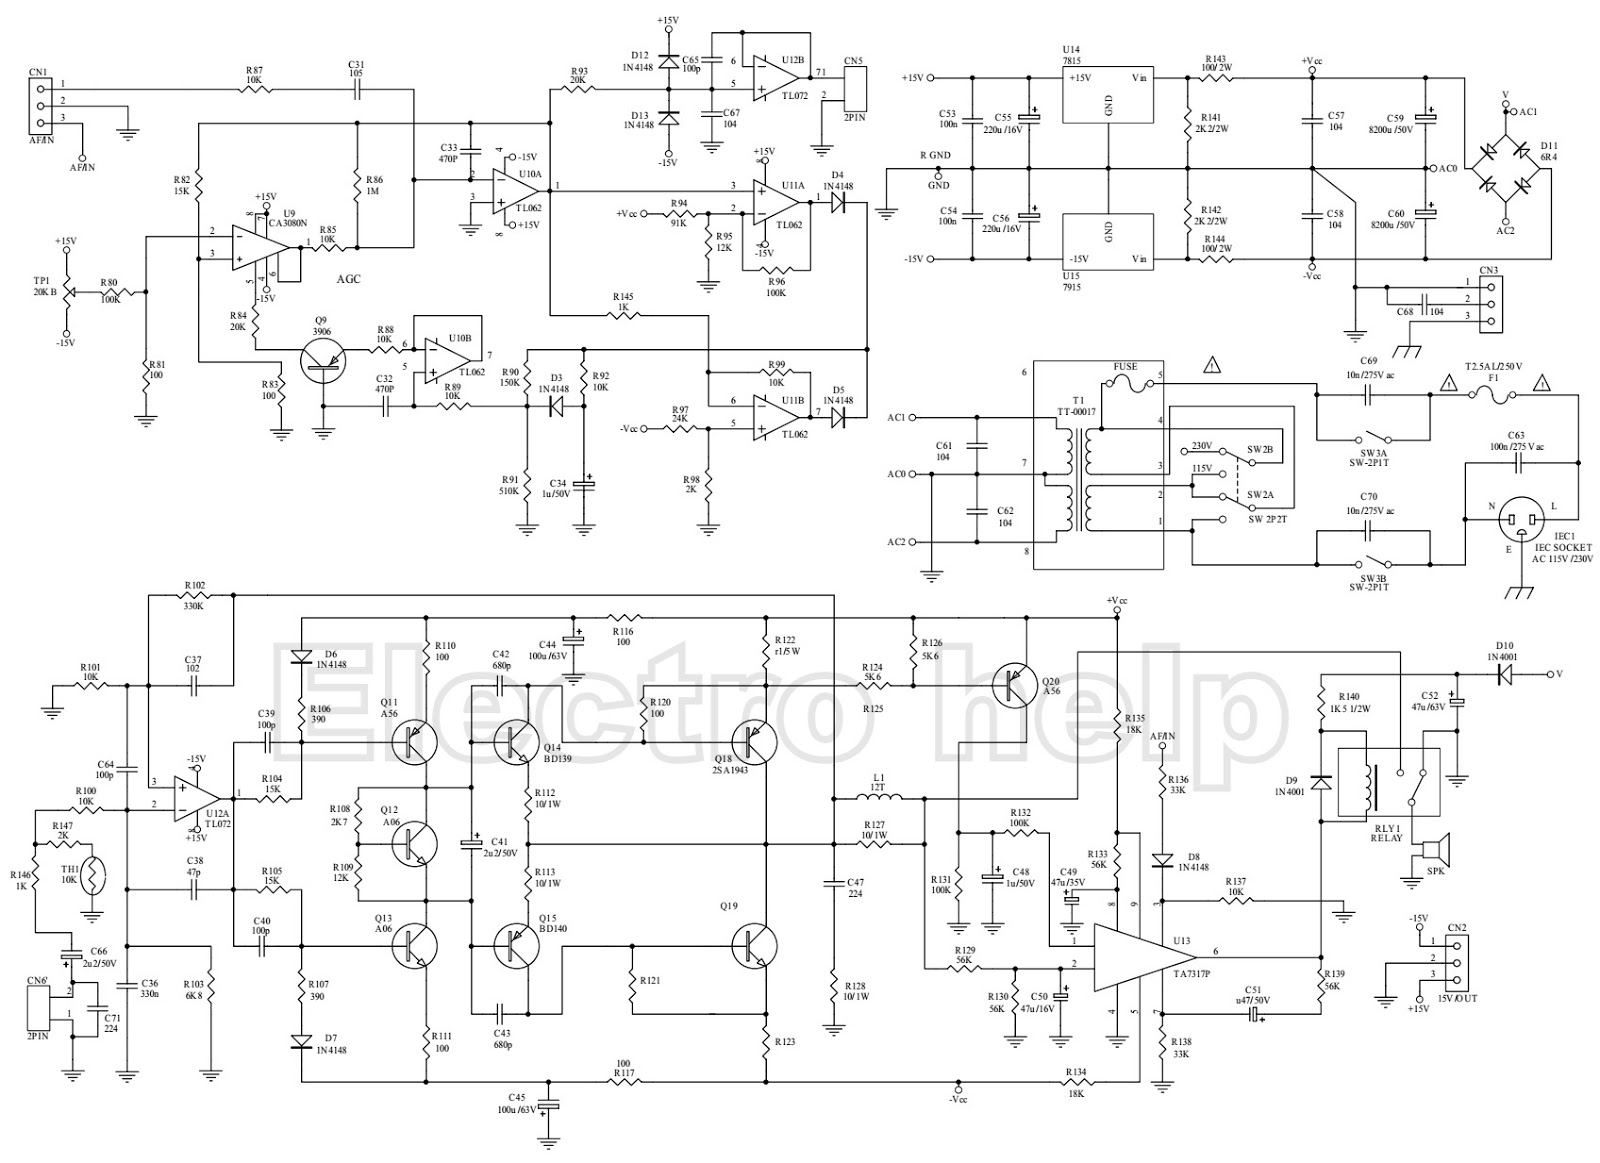 Woofer Amplifier Circuit Diagram Smart Wiring Diagrams C36 Kef Psw 2500 Powered Sub Schematic Car Subwoofer Pdf